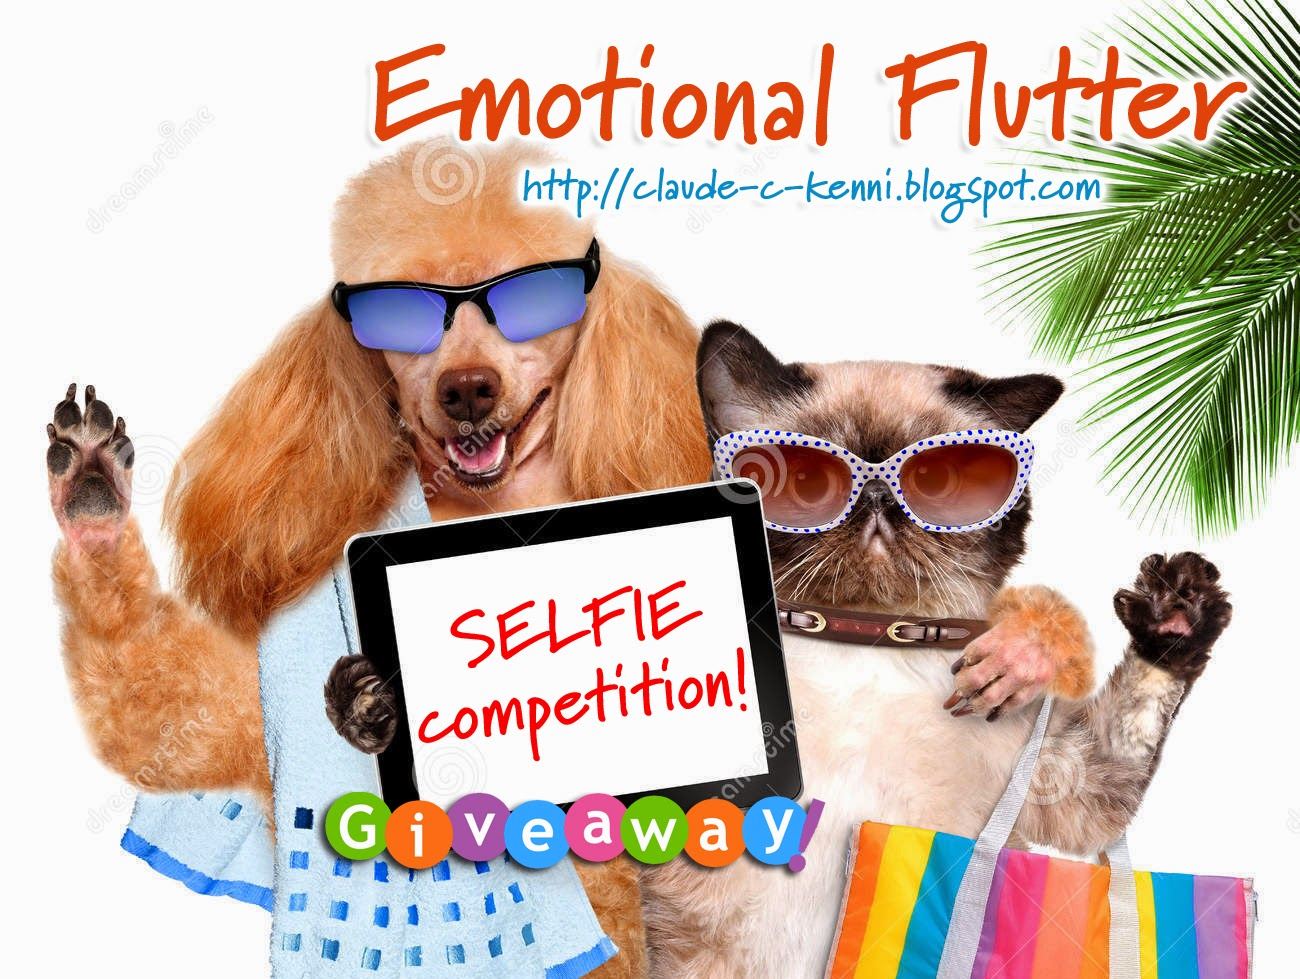 http://claude-c-kenni.blogspot.com/2014/07/emotional-flutter-selfie-competition.html